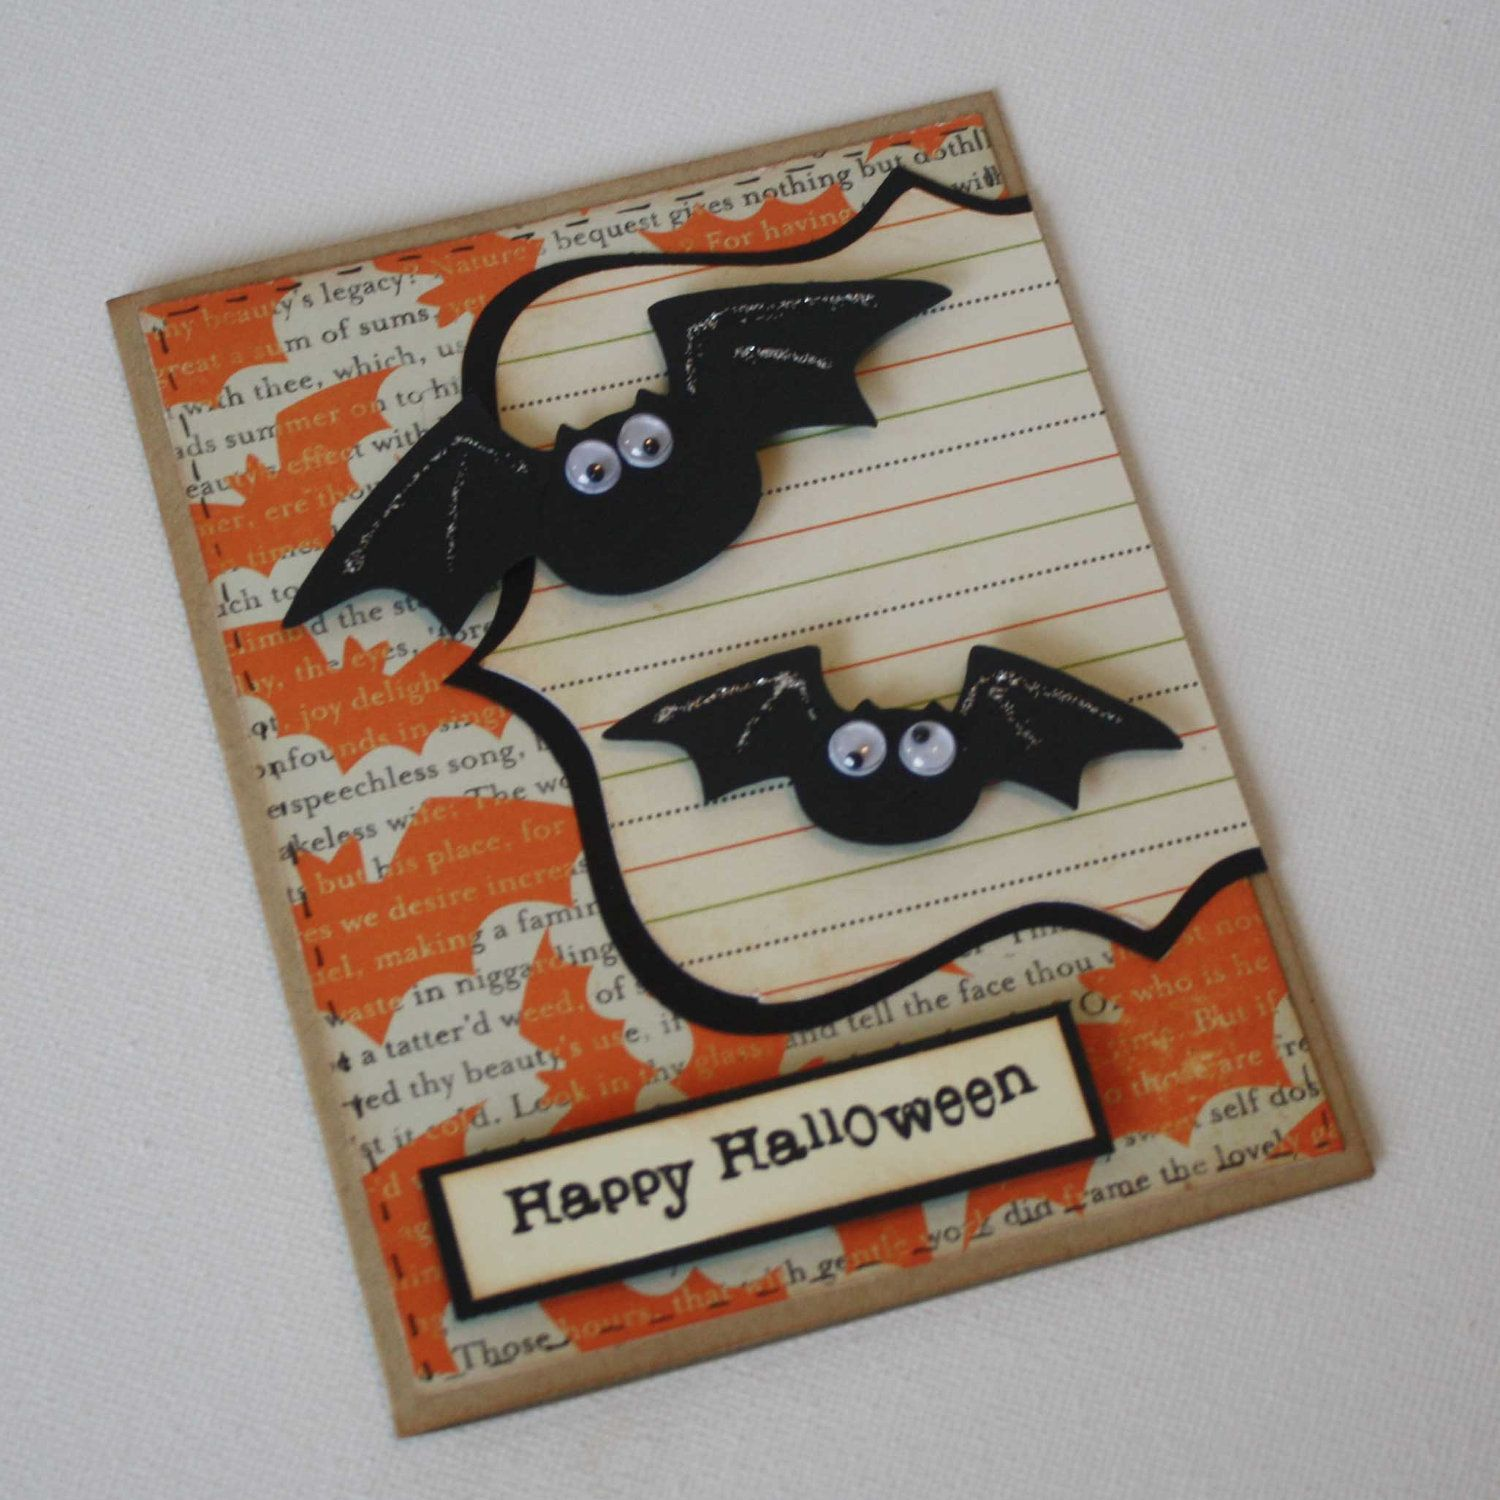 EtsyGreetings Handmade Cards: Halloween Greeting Card Bats